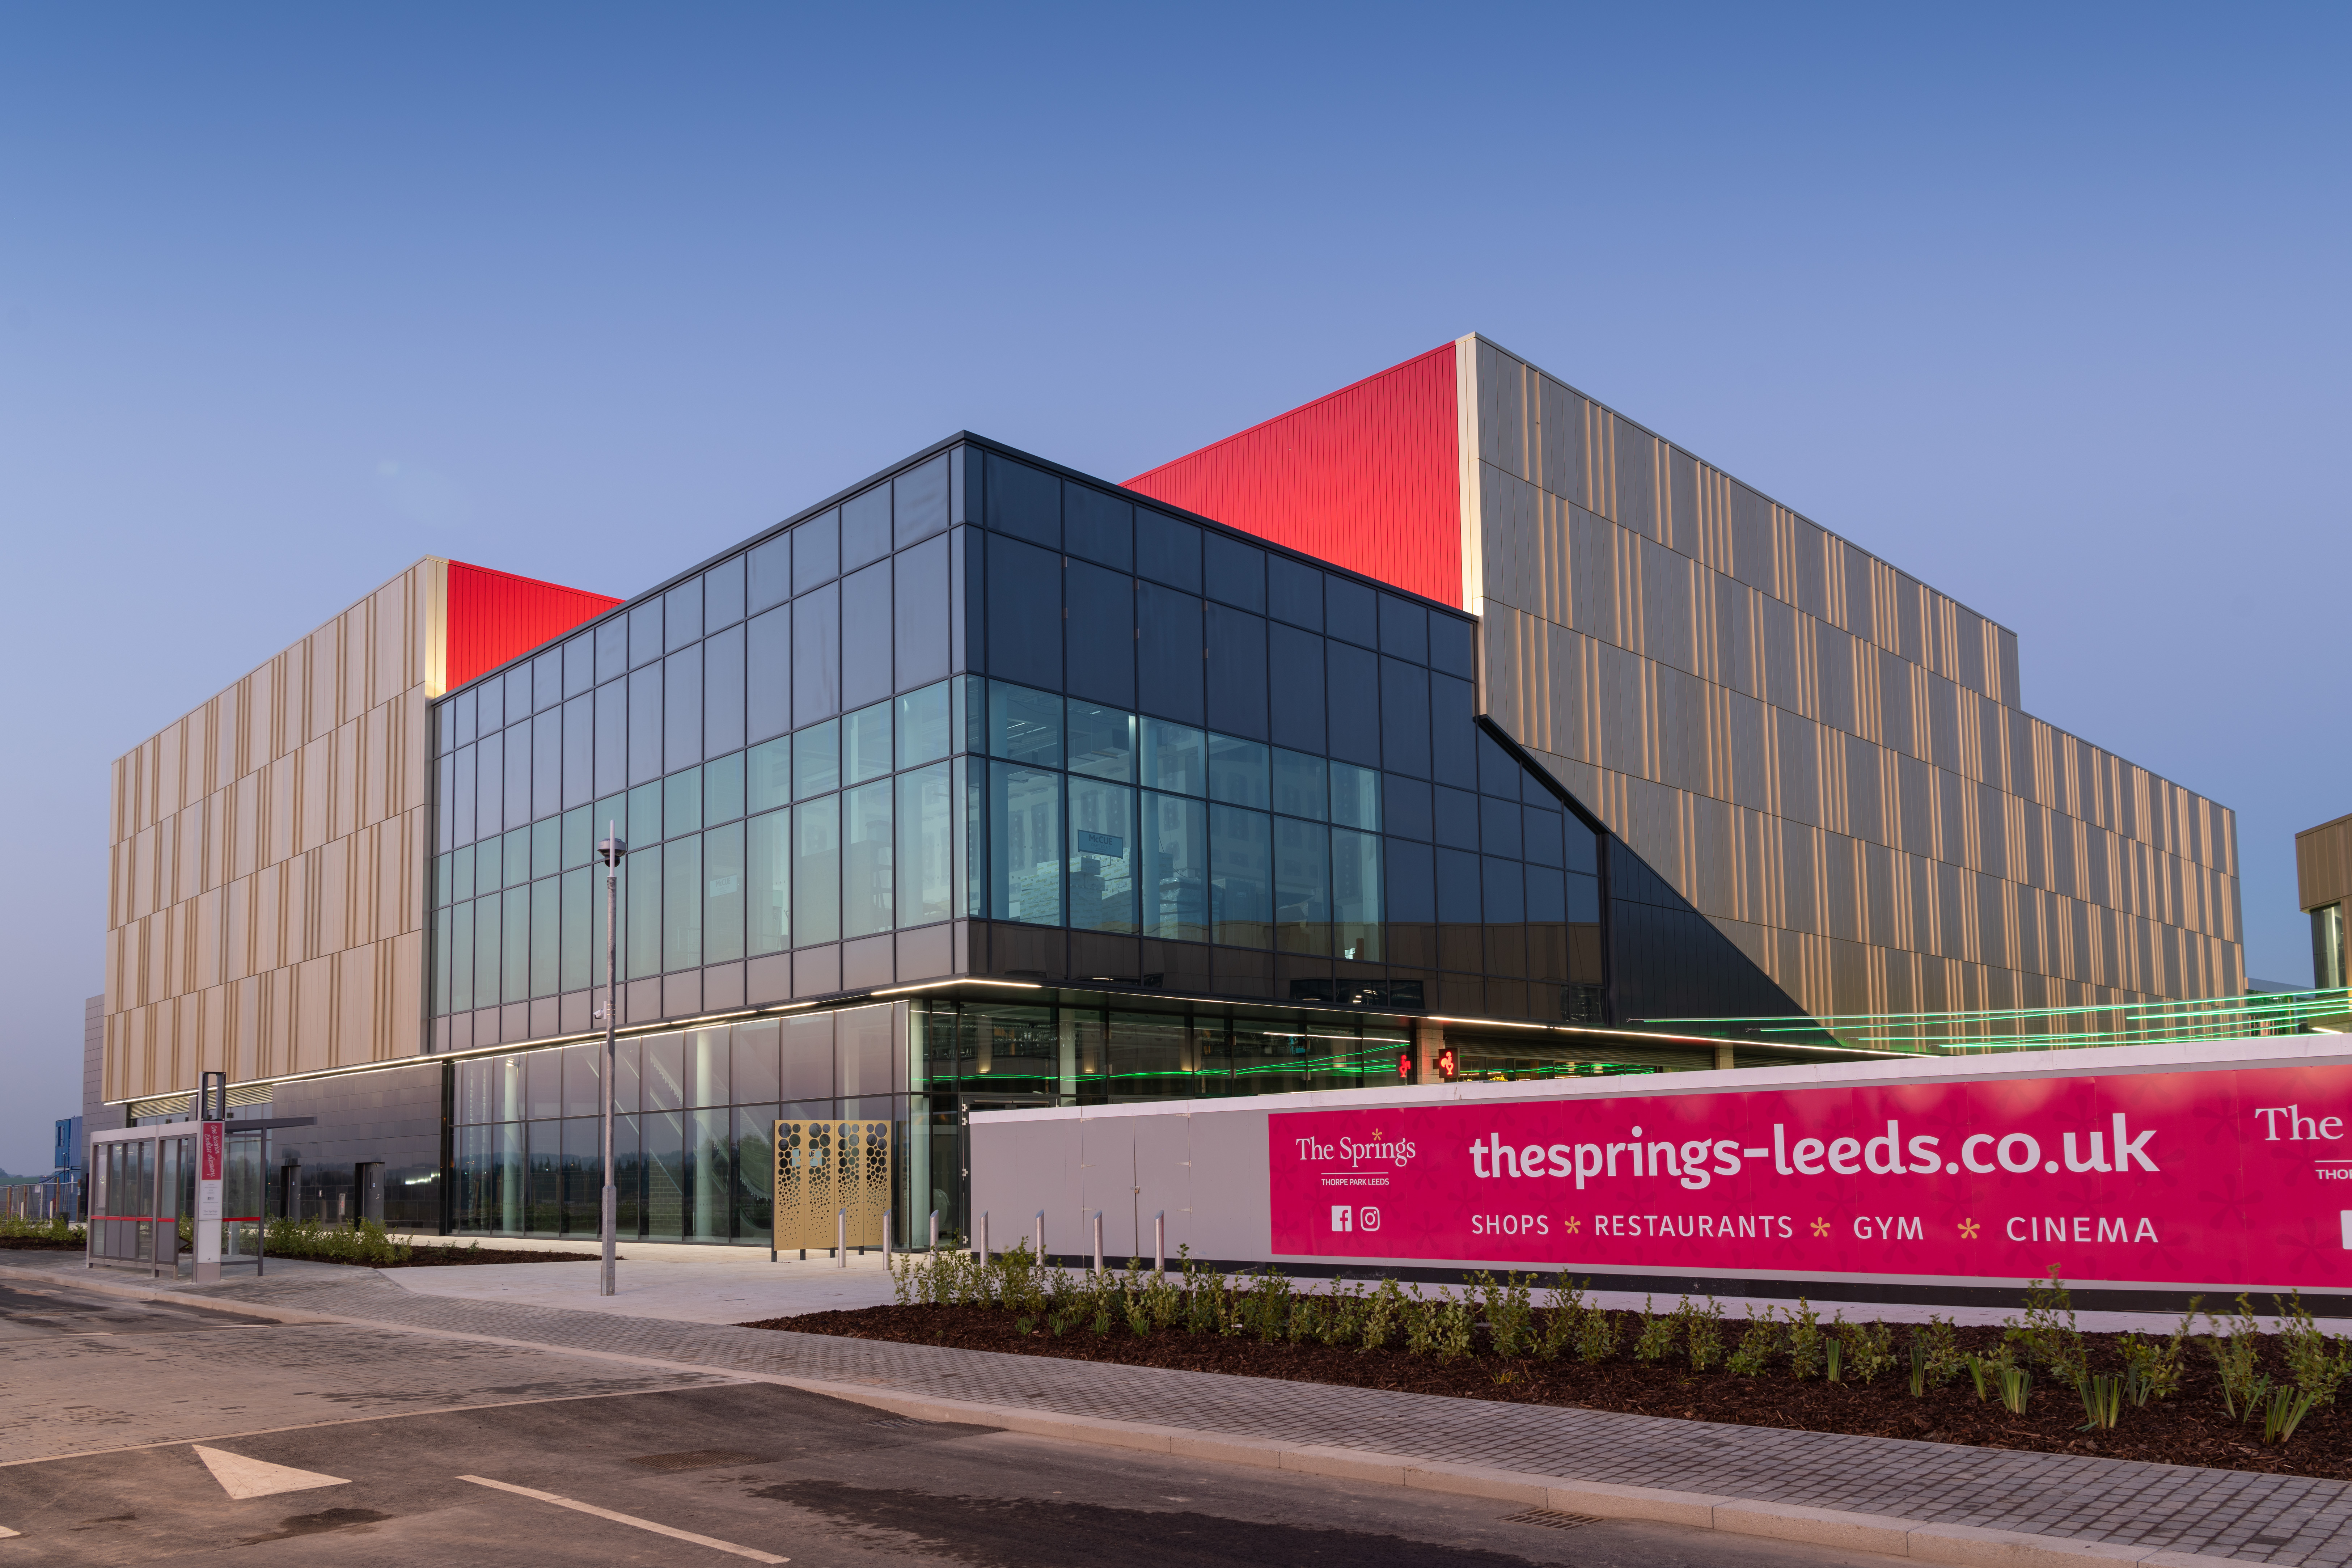 The Springs Shopping and Leisure Centre, Thorpe Park, Leeds, West Yorkshire, United Kingdom. Copy right © Giles Rocholl Photography Ltd